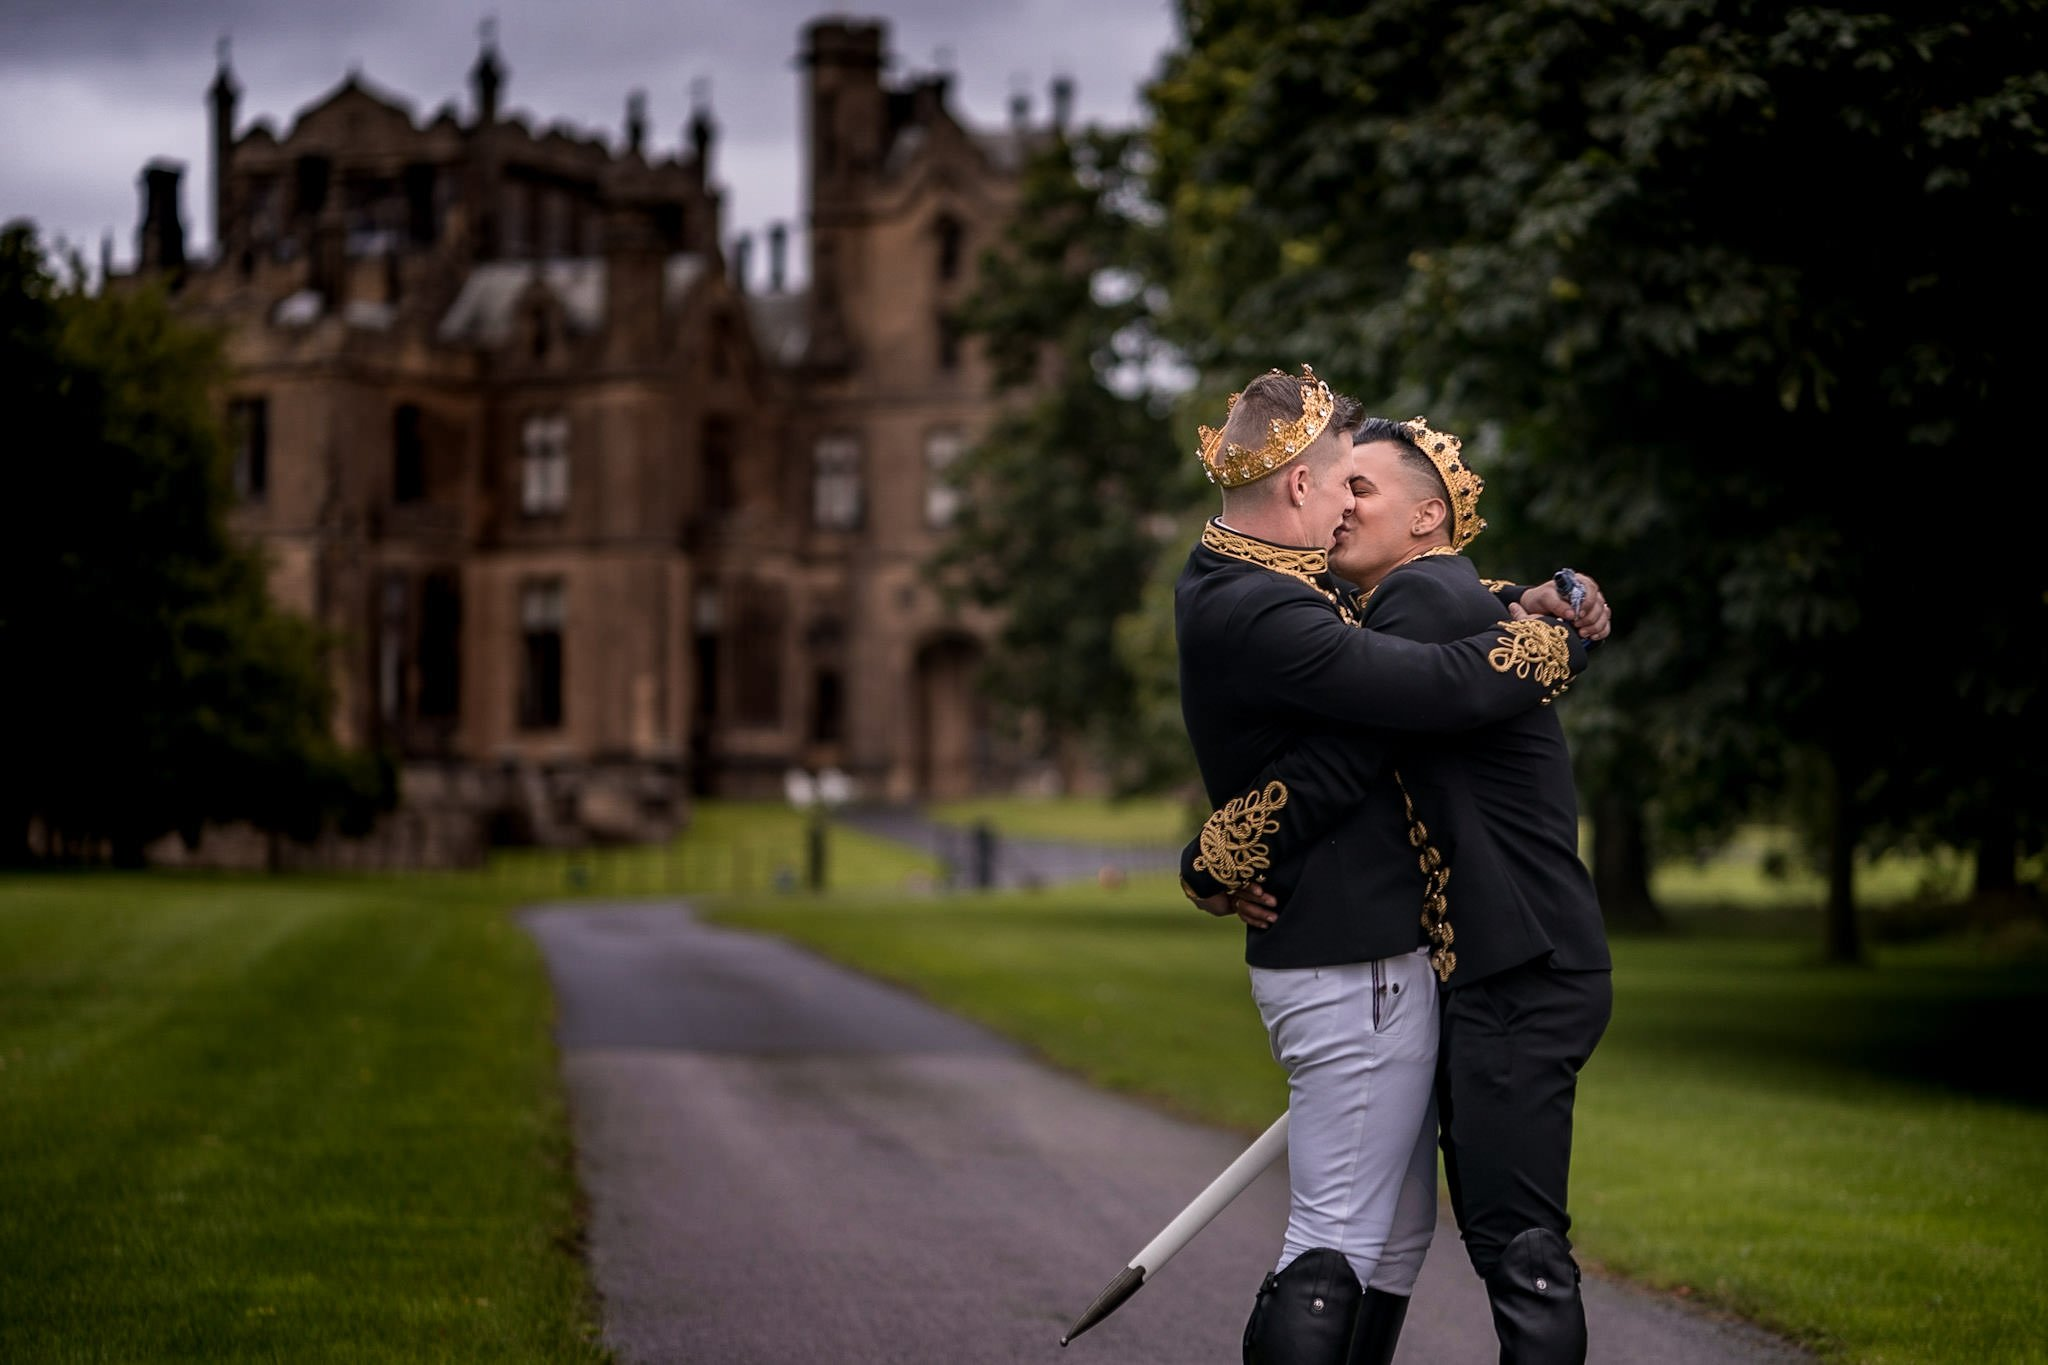 Allerton Castle Knaresborough Hutchinson Weddings Photography kisses on the driveway in front of the castle